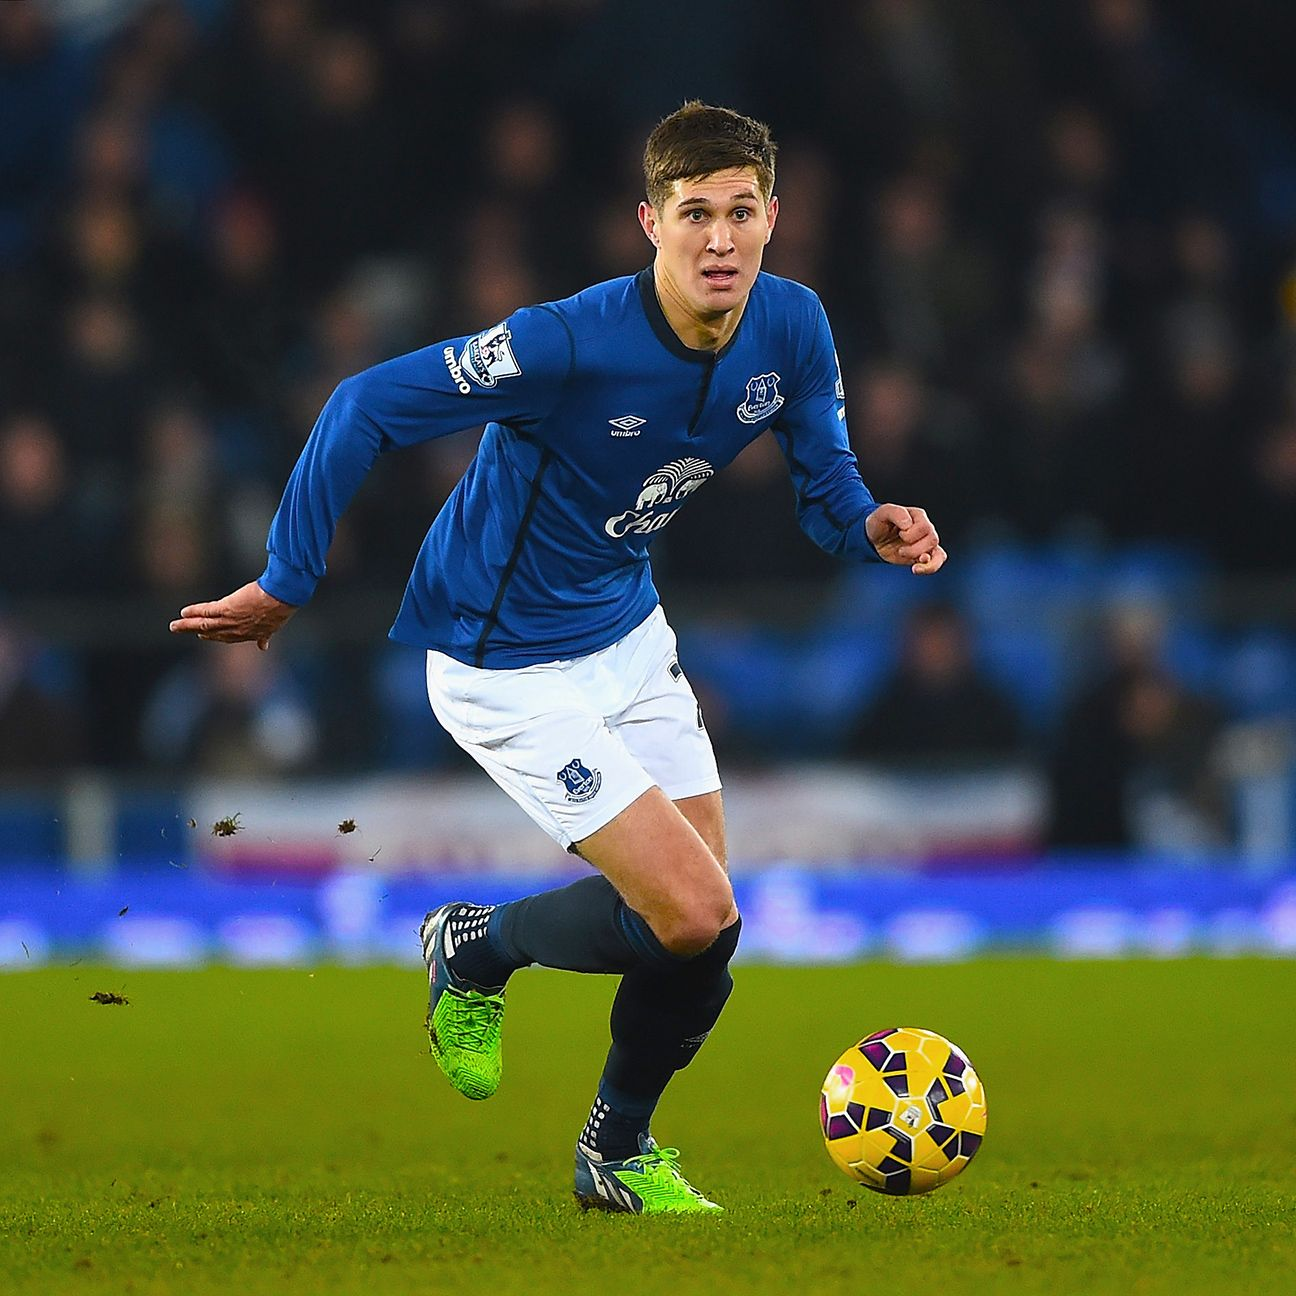 John Stones could yet be wearing Chelsea blue come September, making it even more difficult for a Chelsea youth team defender to become a first-team stalwart.